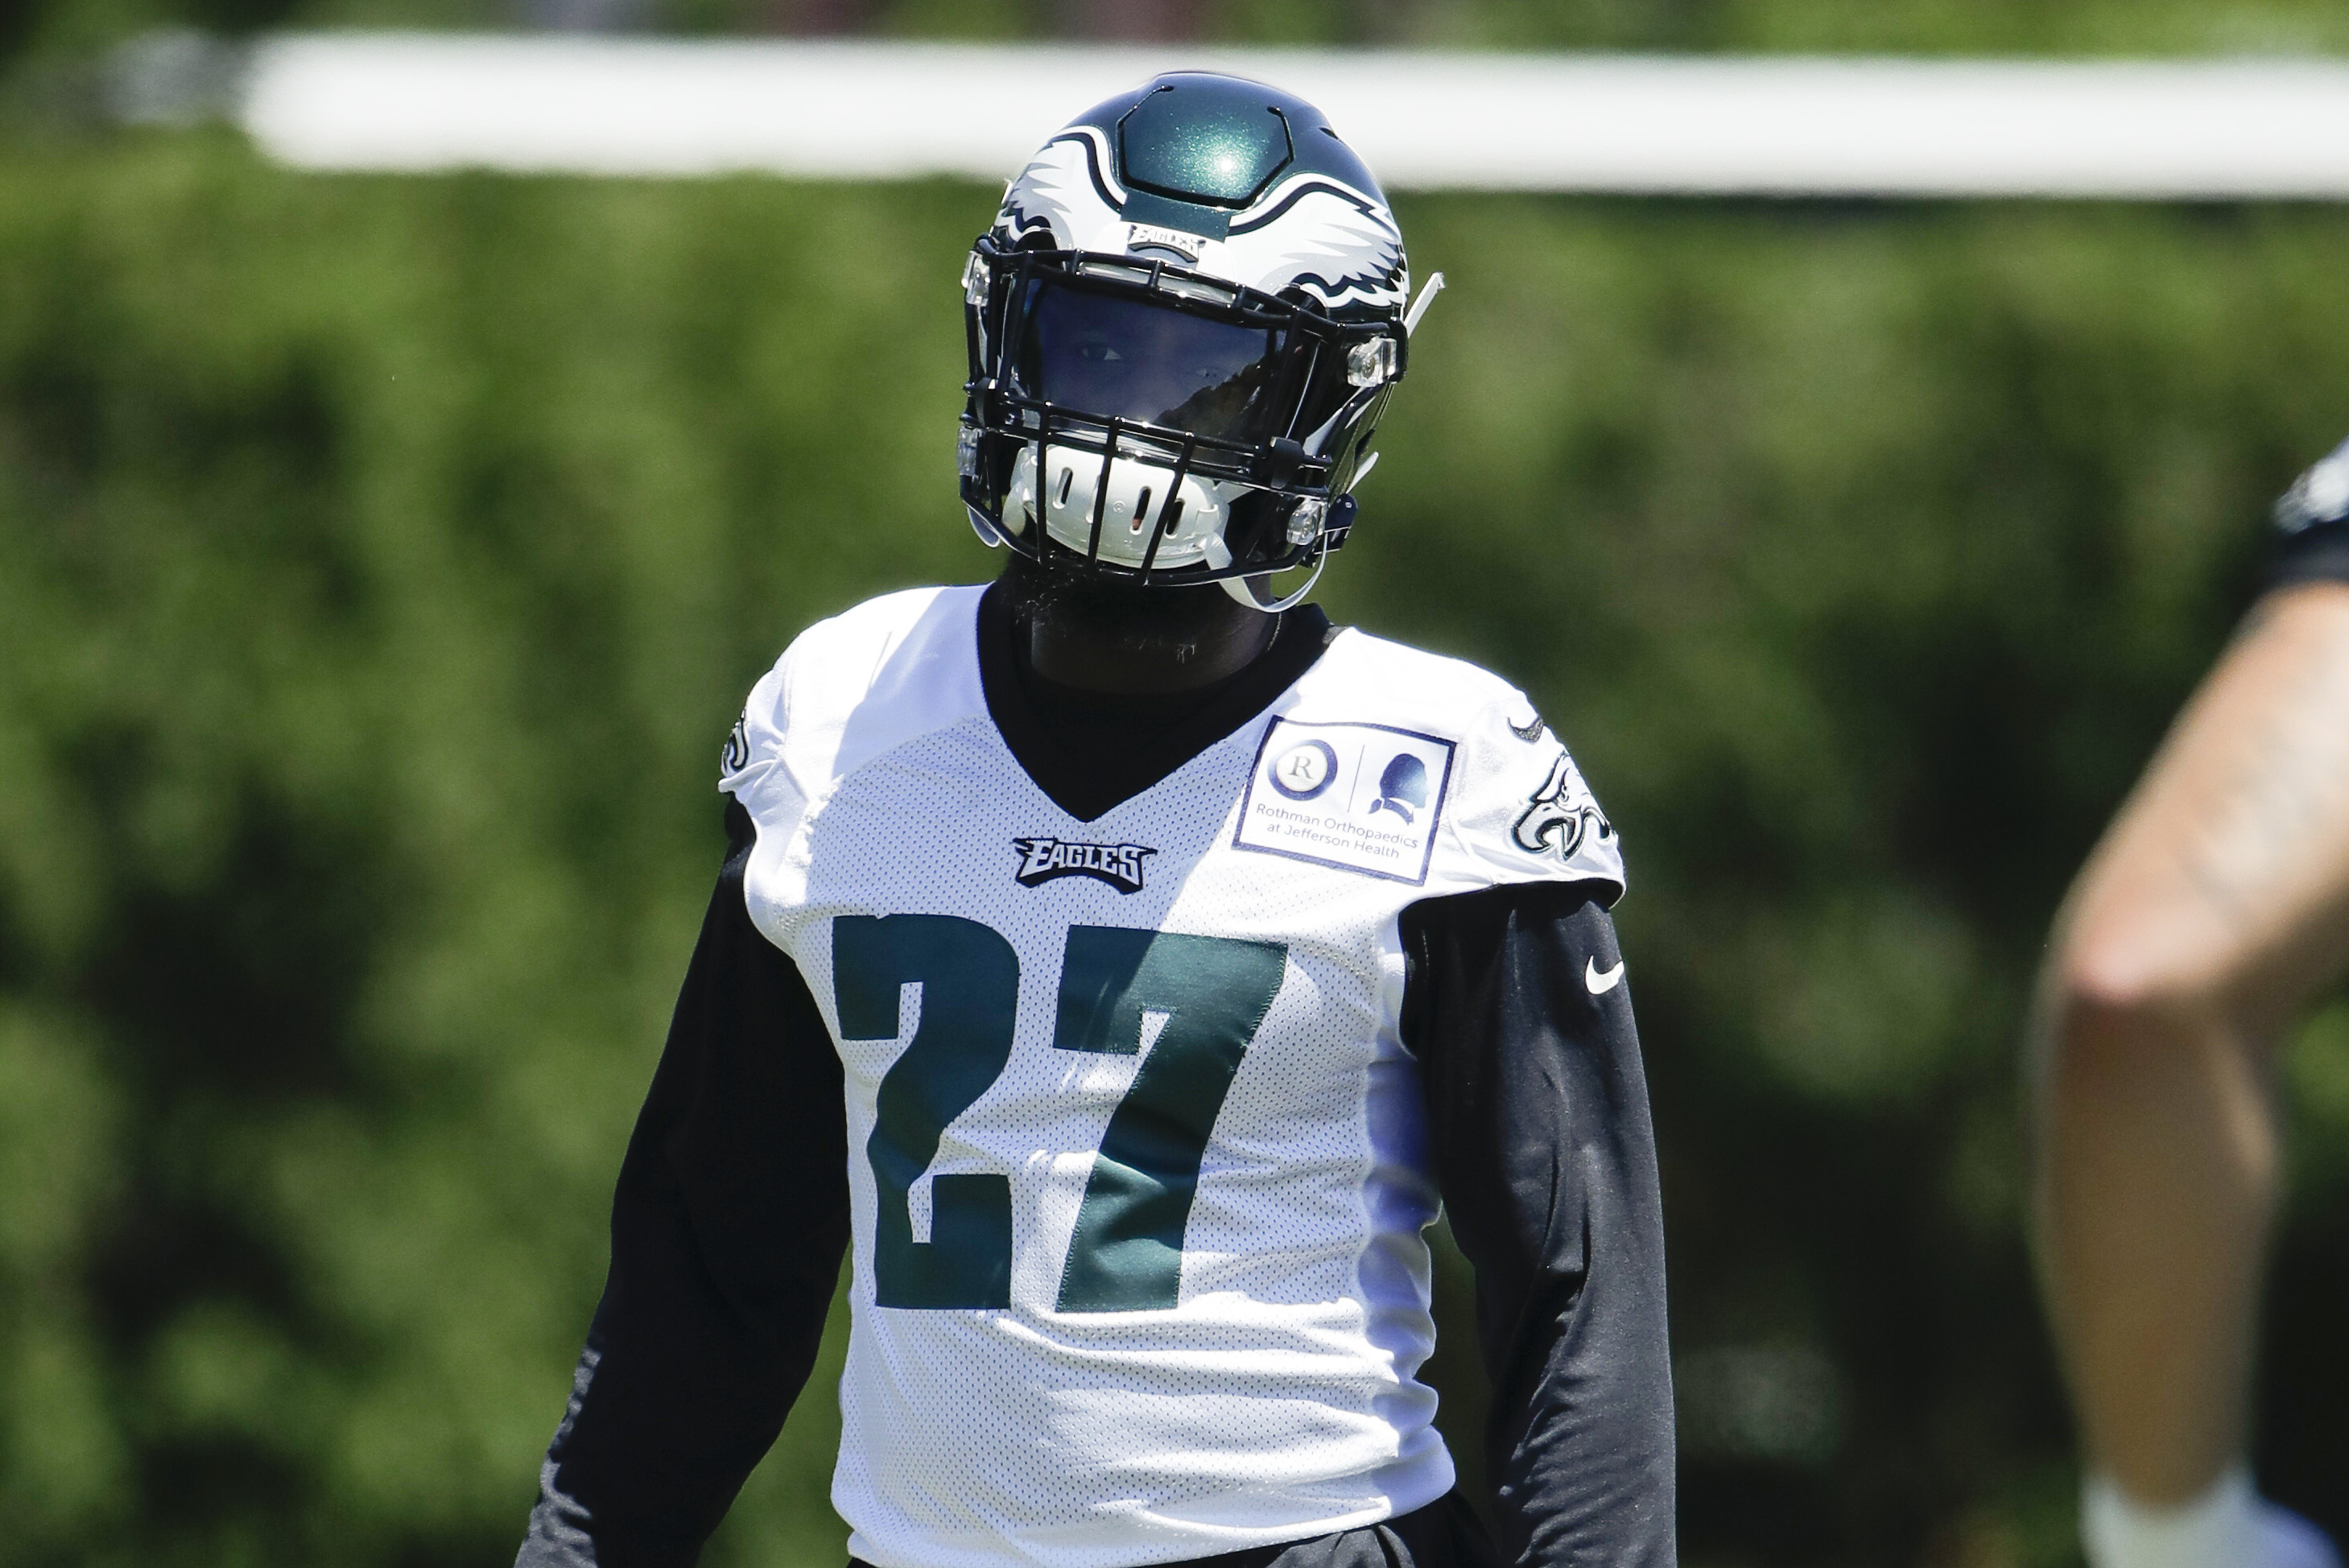 7a031583d48 Eagles' Malcolm Jenkins Says He's 'Outplayed' His Current Contract at  Minicamp